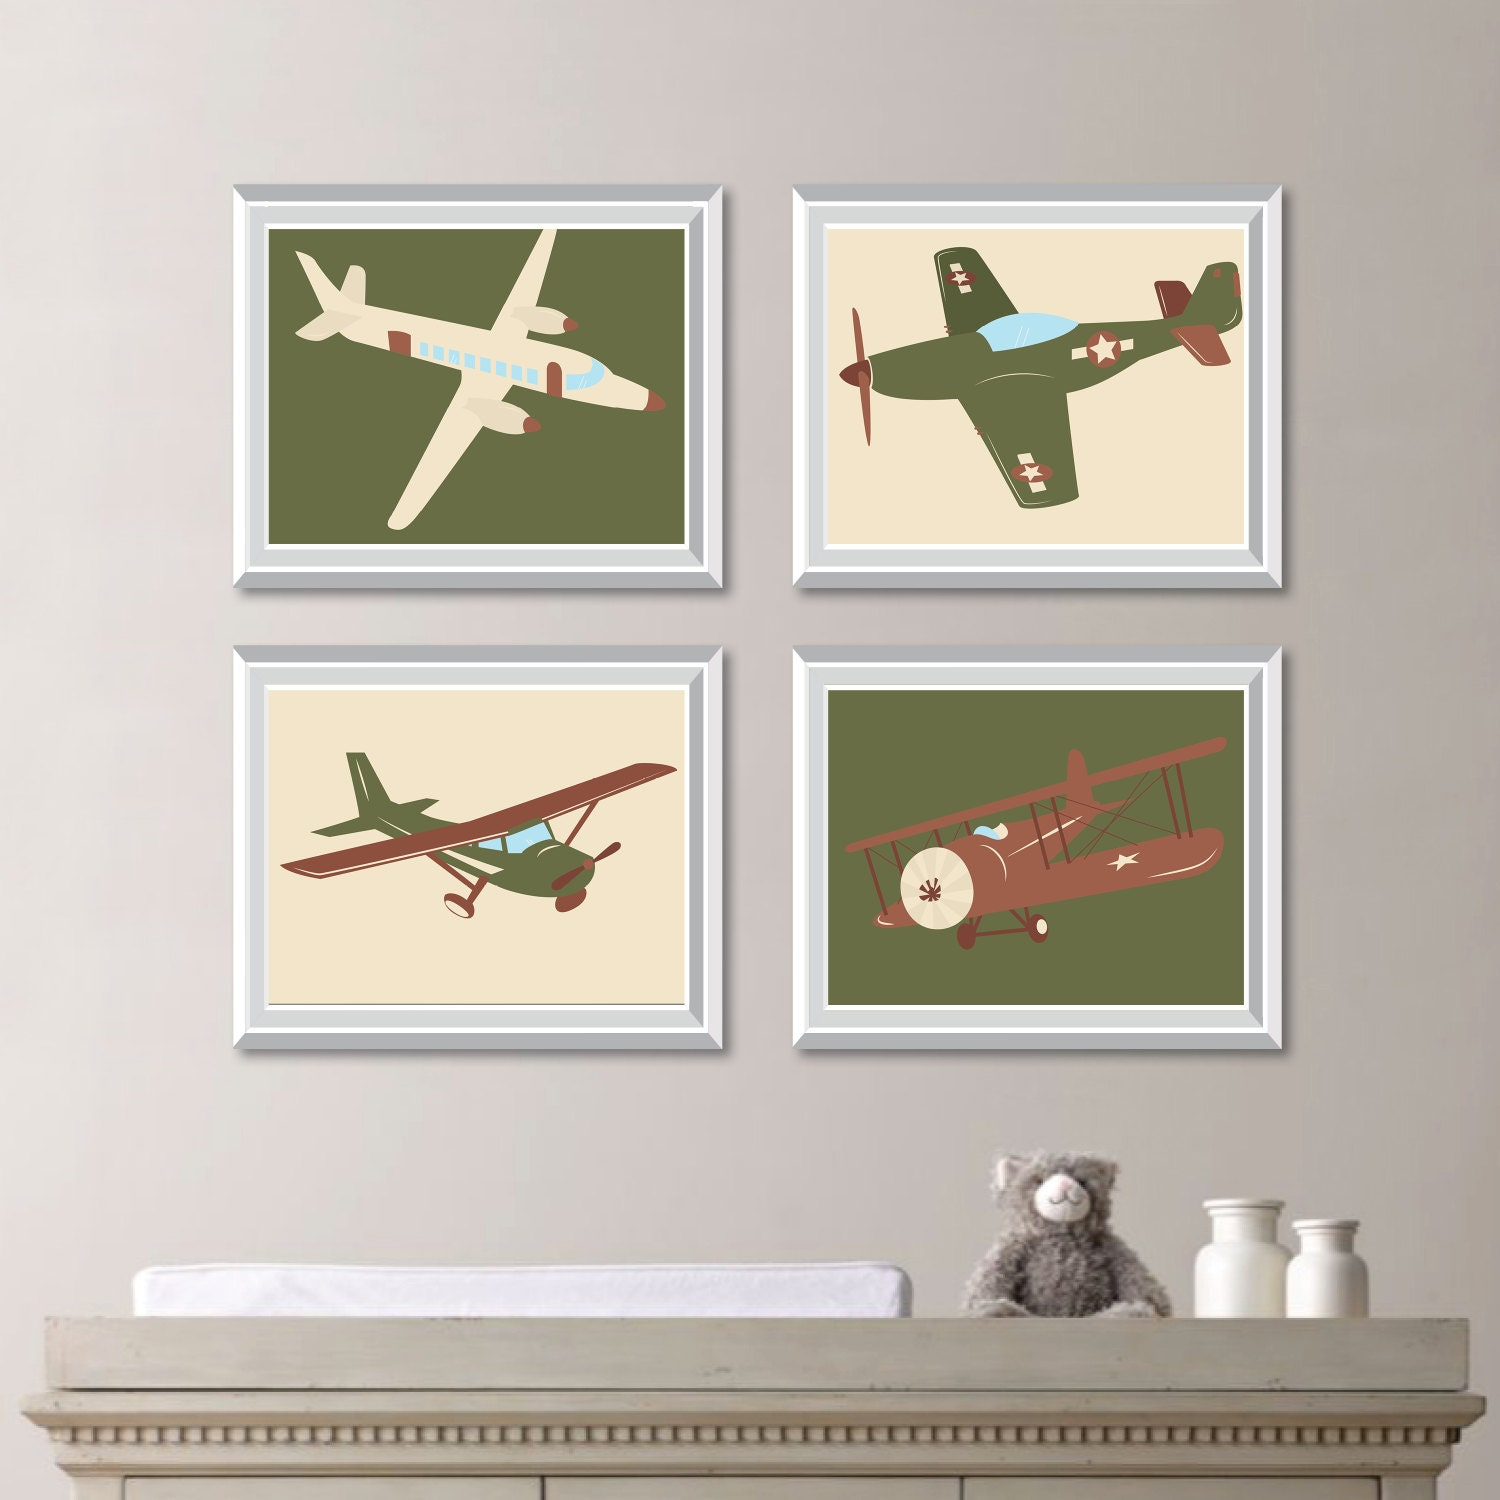 yochicago interior decoration design picture s loop ave cool south watchho lofts decor com michigan also ideas decorating home modern aviation